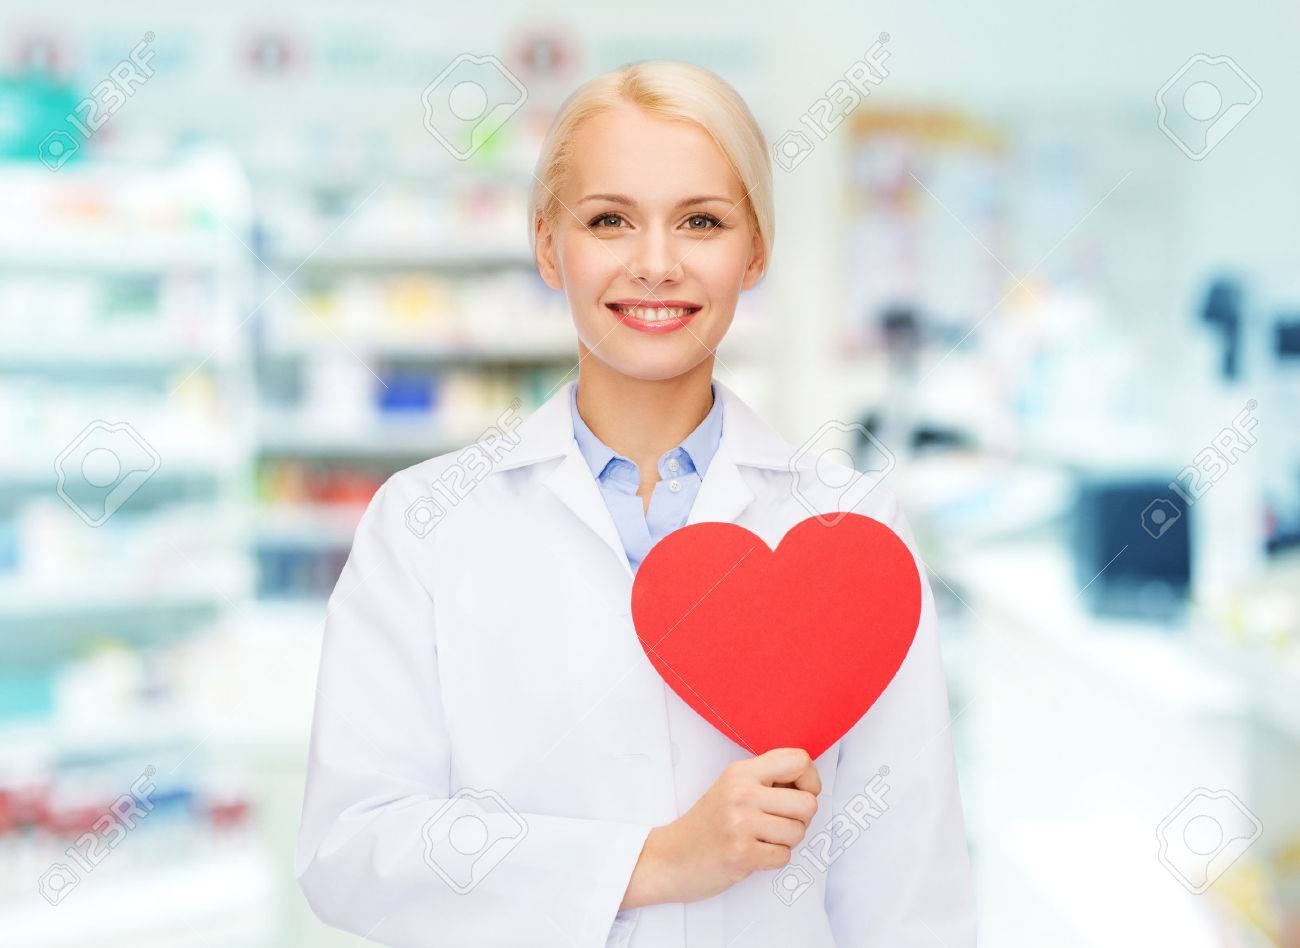 medicine, pharmacy, people, health care and pharmacology concept - happy young woman pharmacist holding red heart shape over drugstore background - 54787780